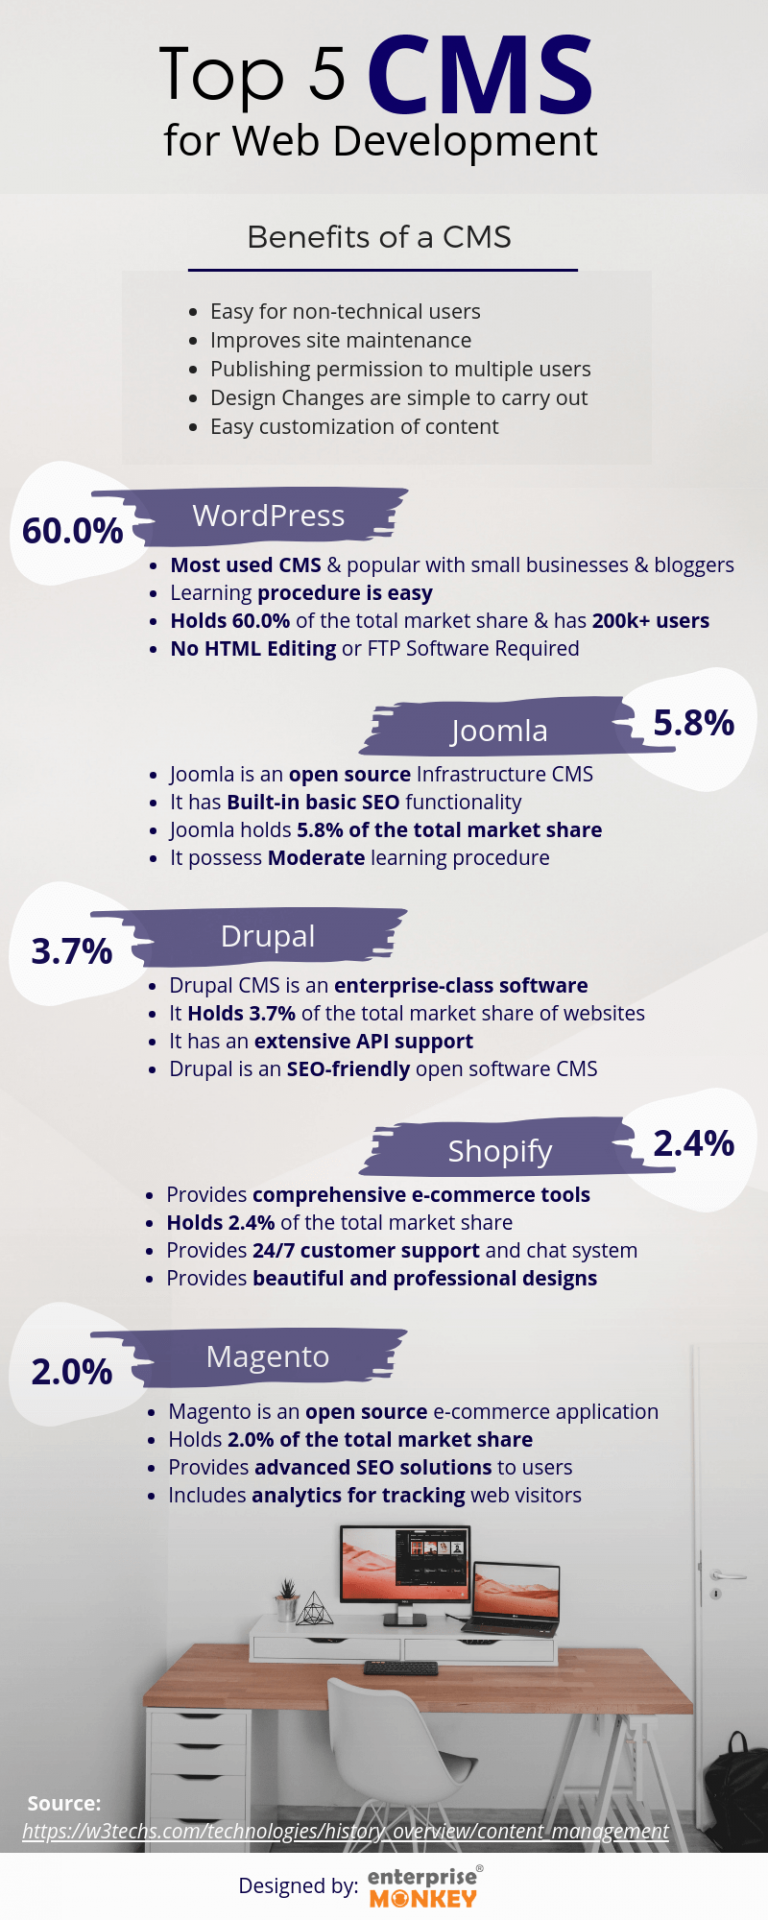 Top-5-Content-Management-Systems-for-Web-Development-infographic